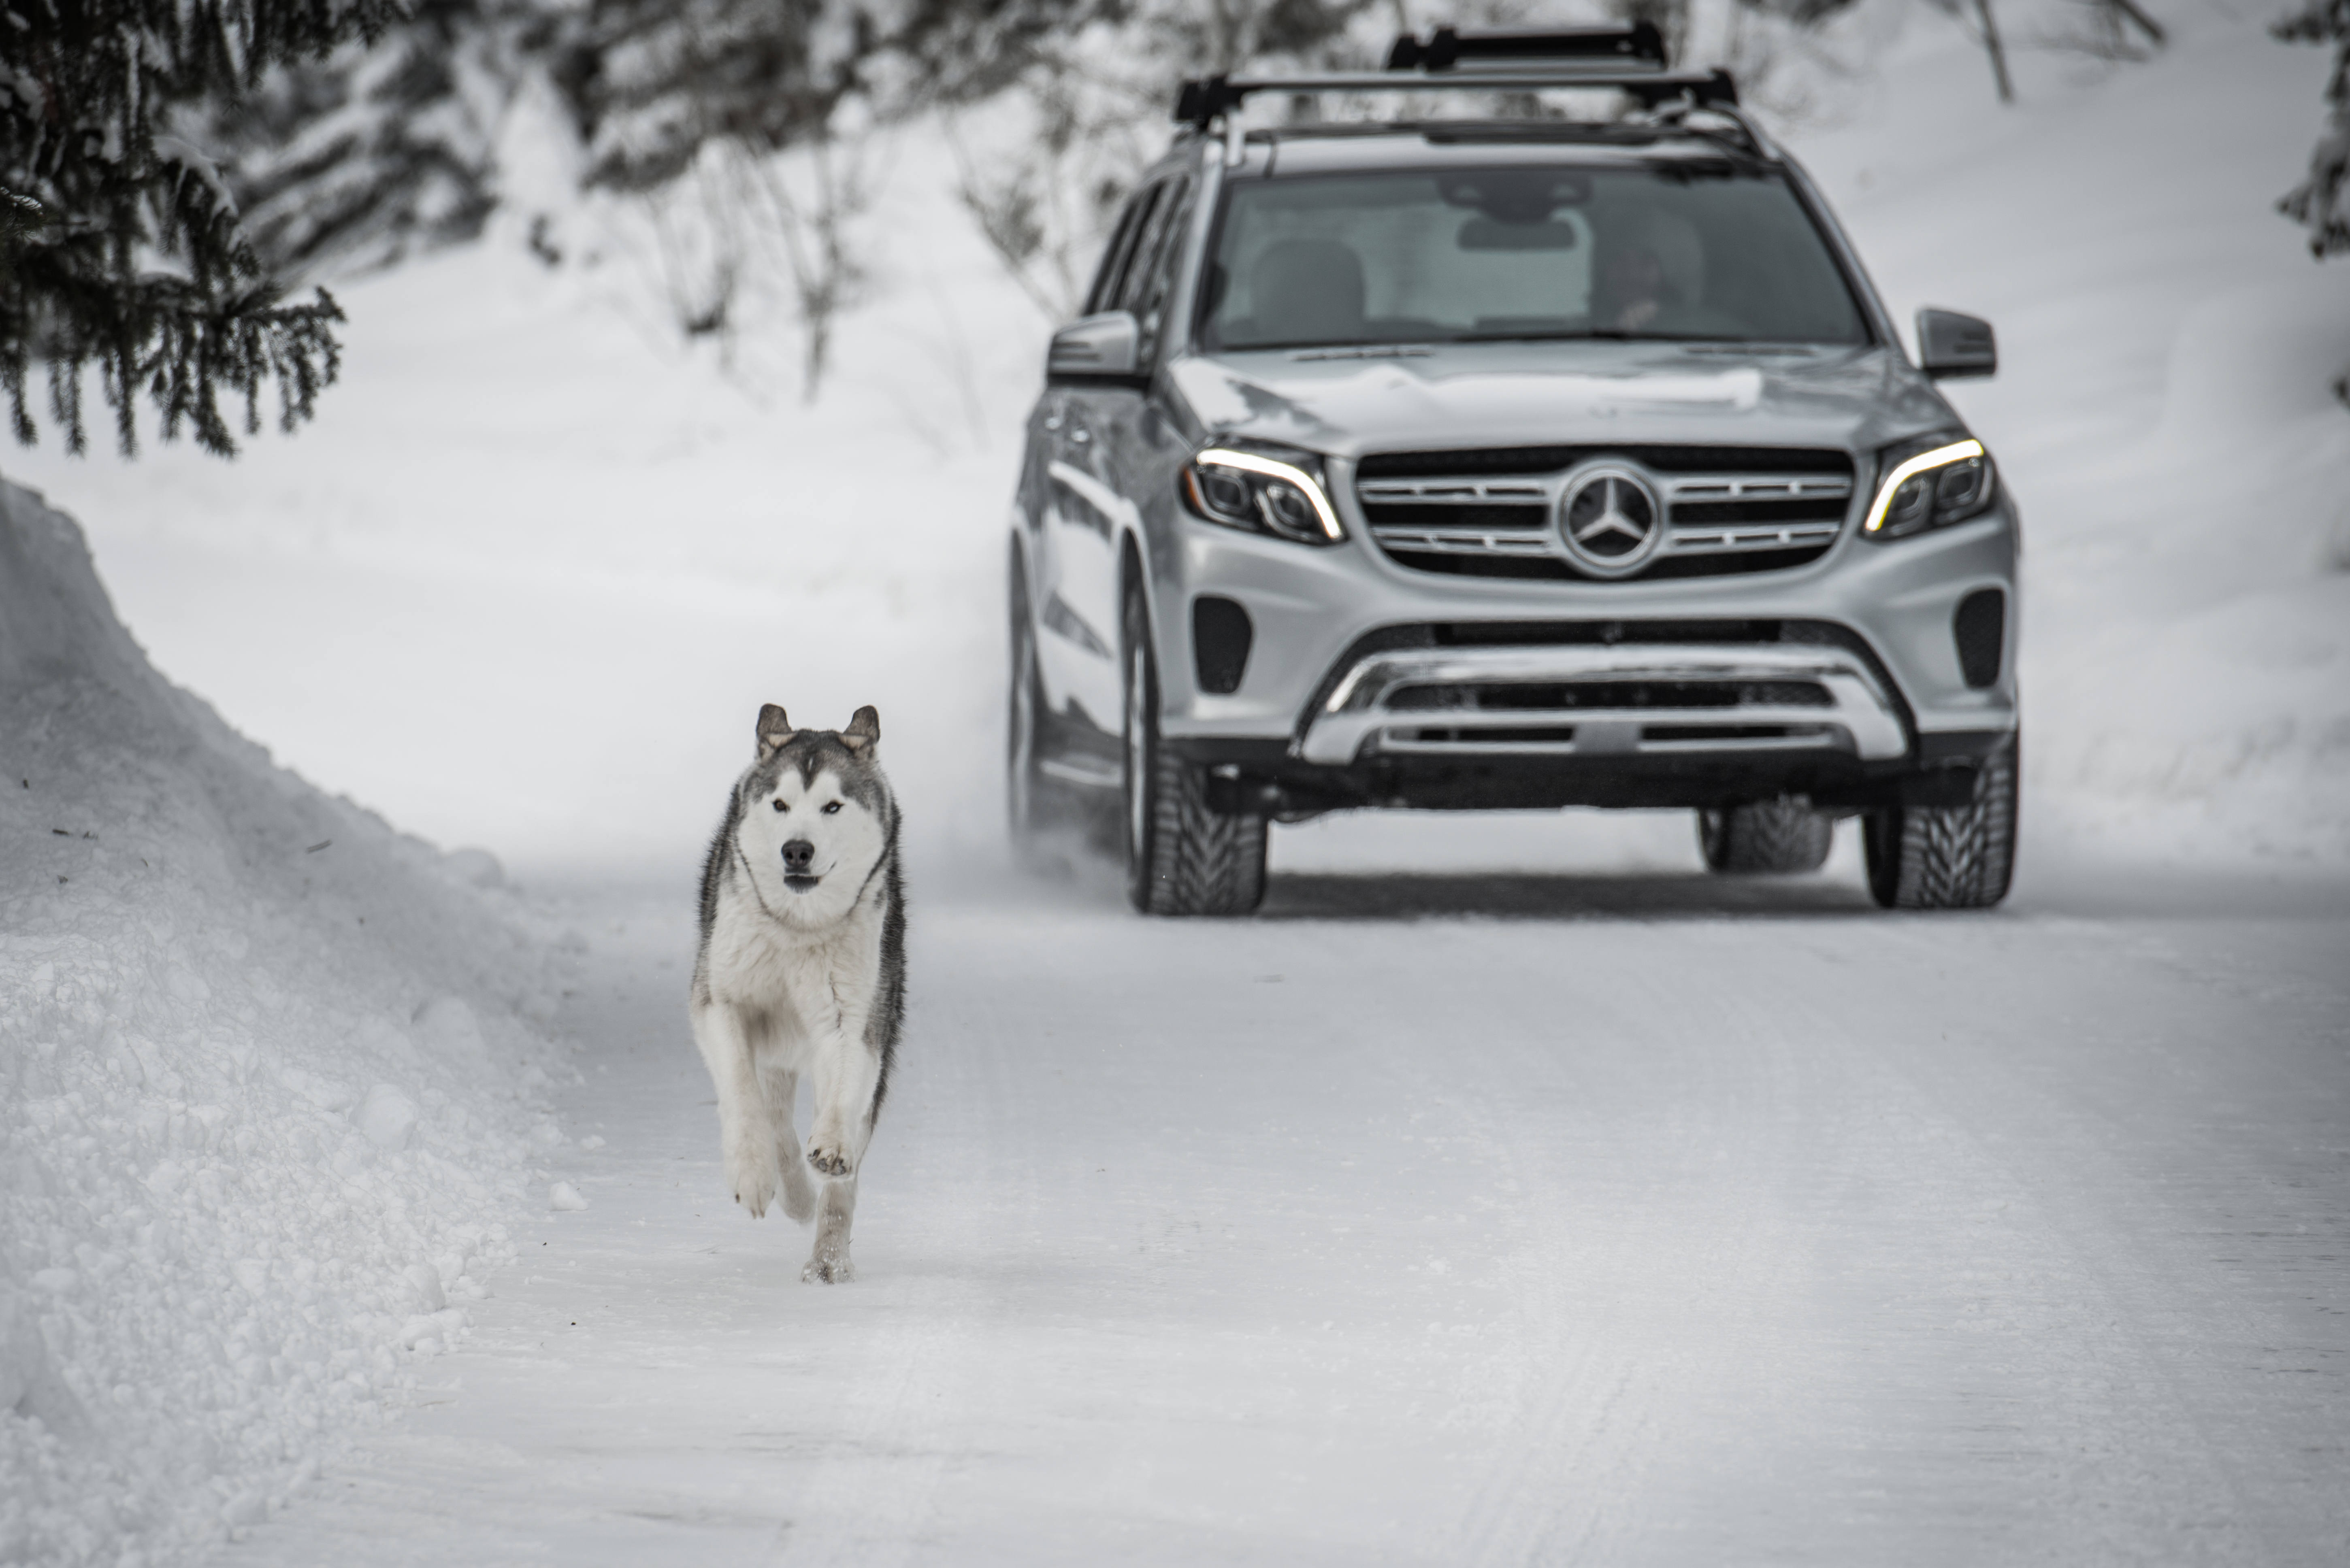 Instagram influencer Loki the wolfdog promotes the Mercedes-Benz GLS in 360-degree videos.